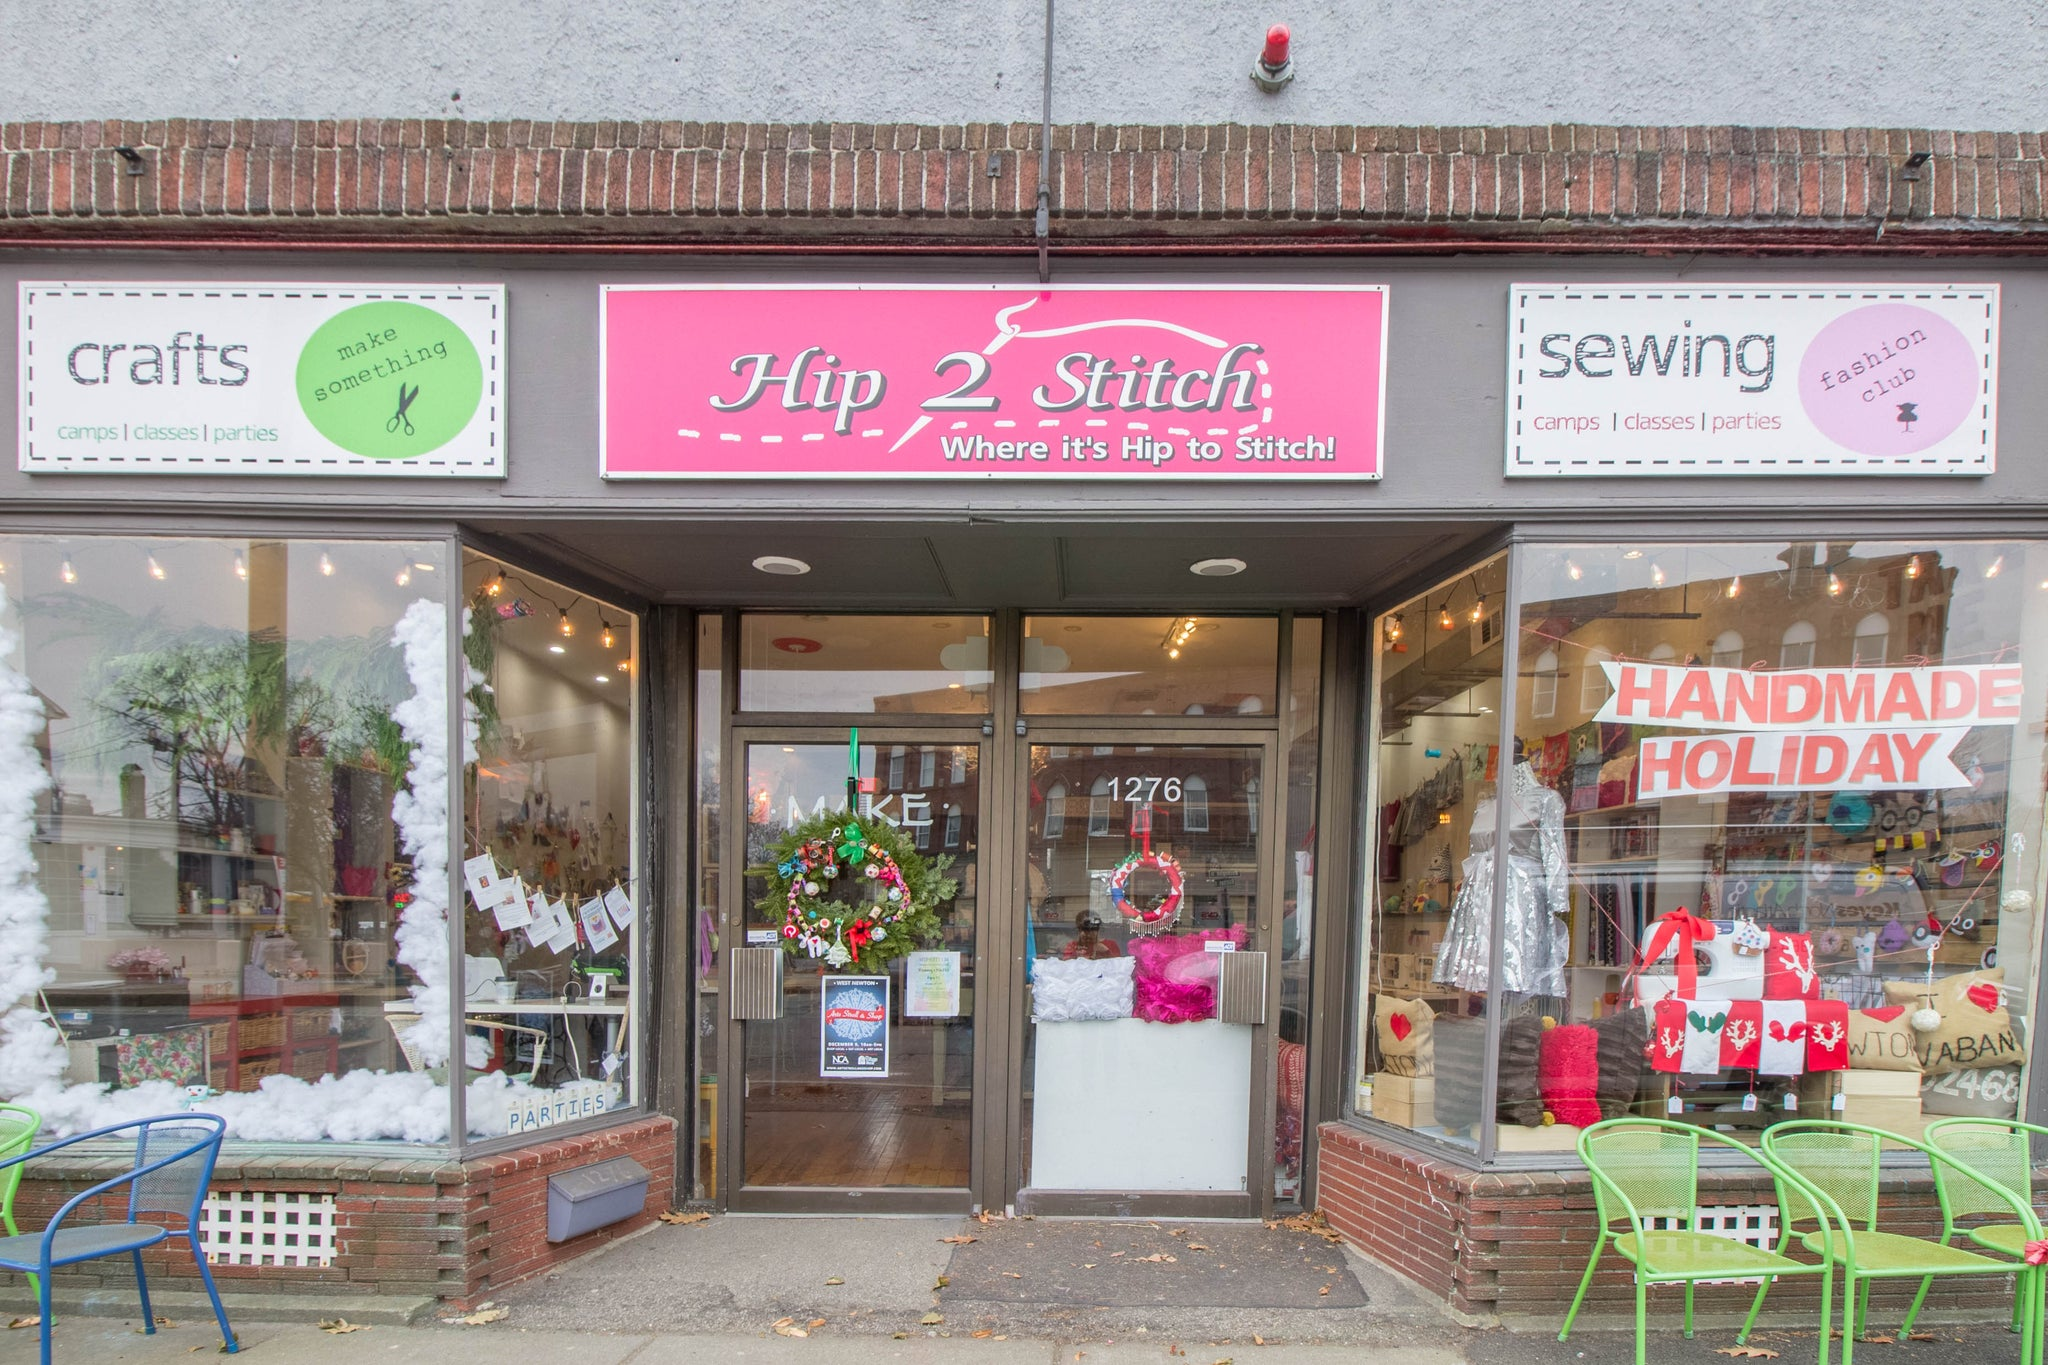 Our beautiful storefront